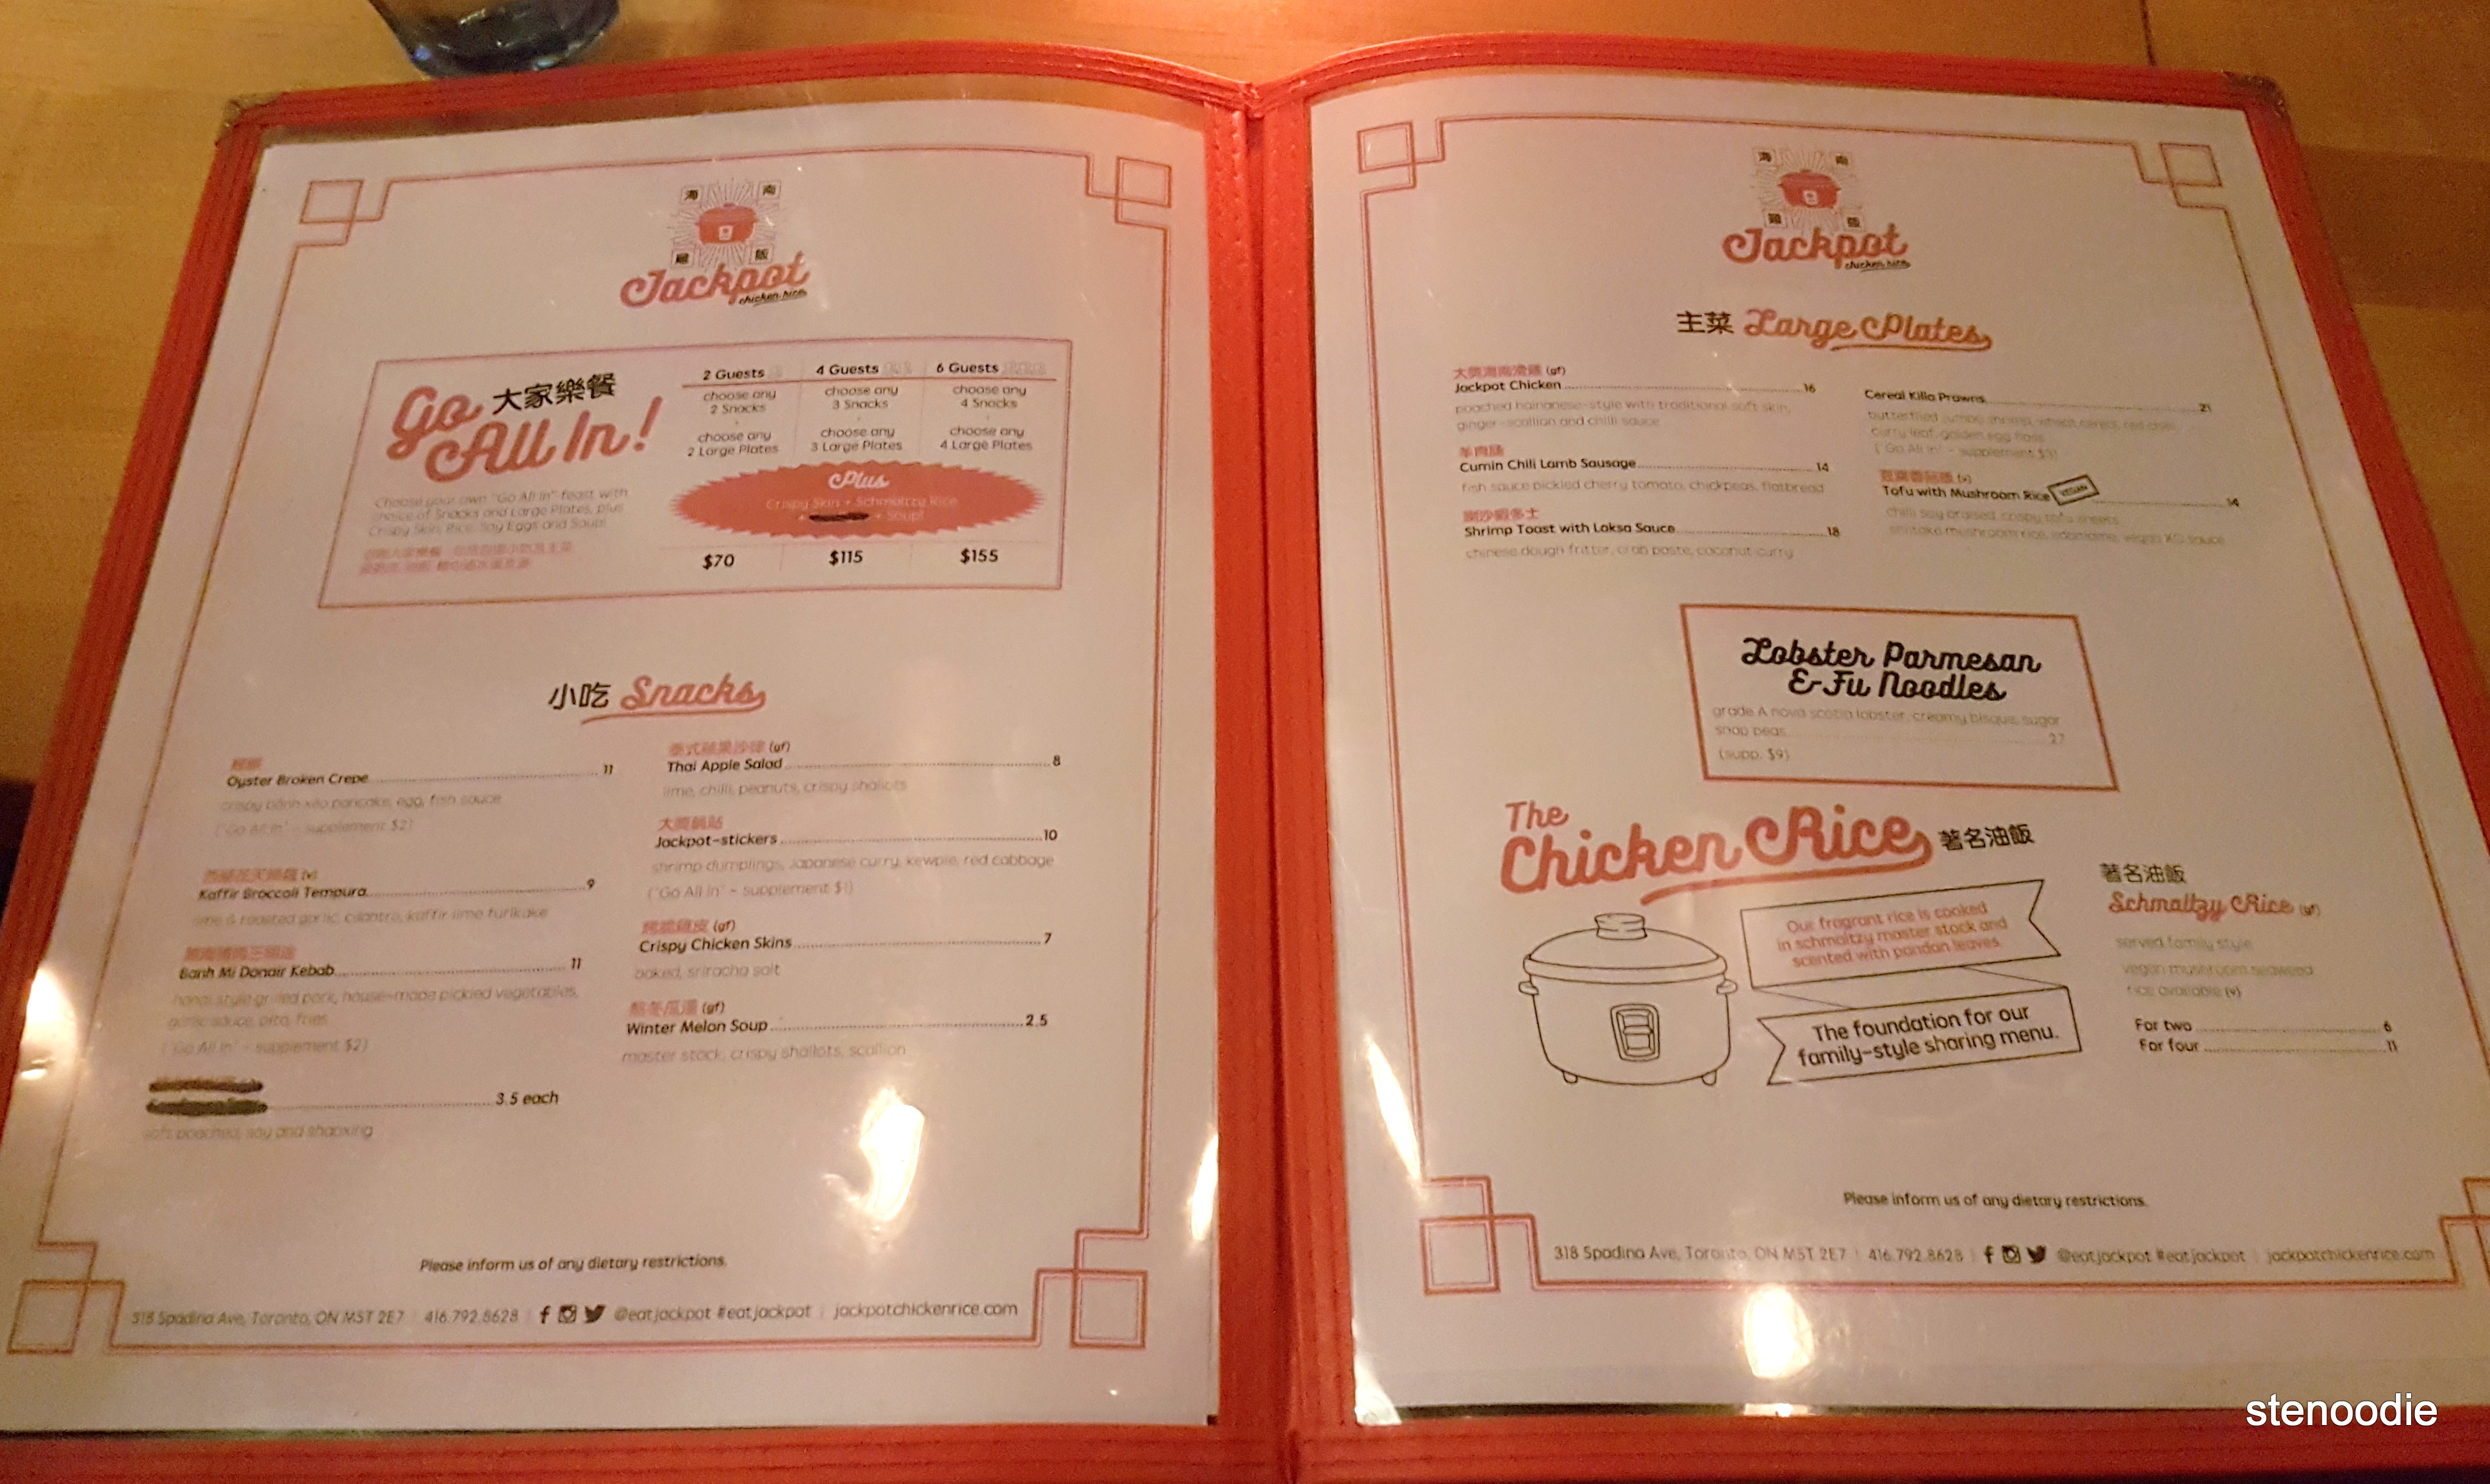 Eat Jackpot menu and prices